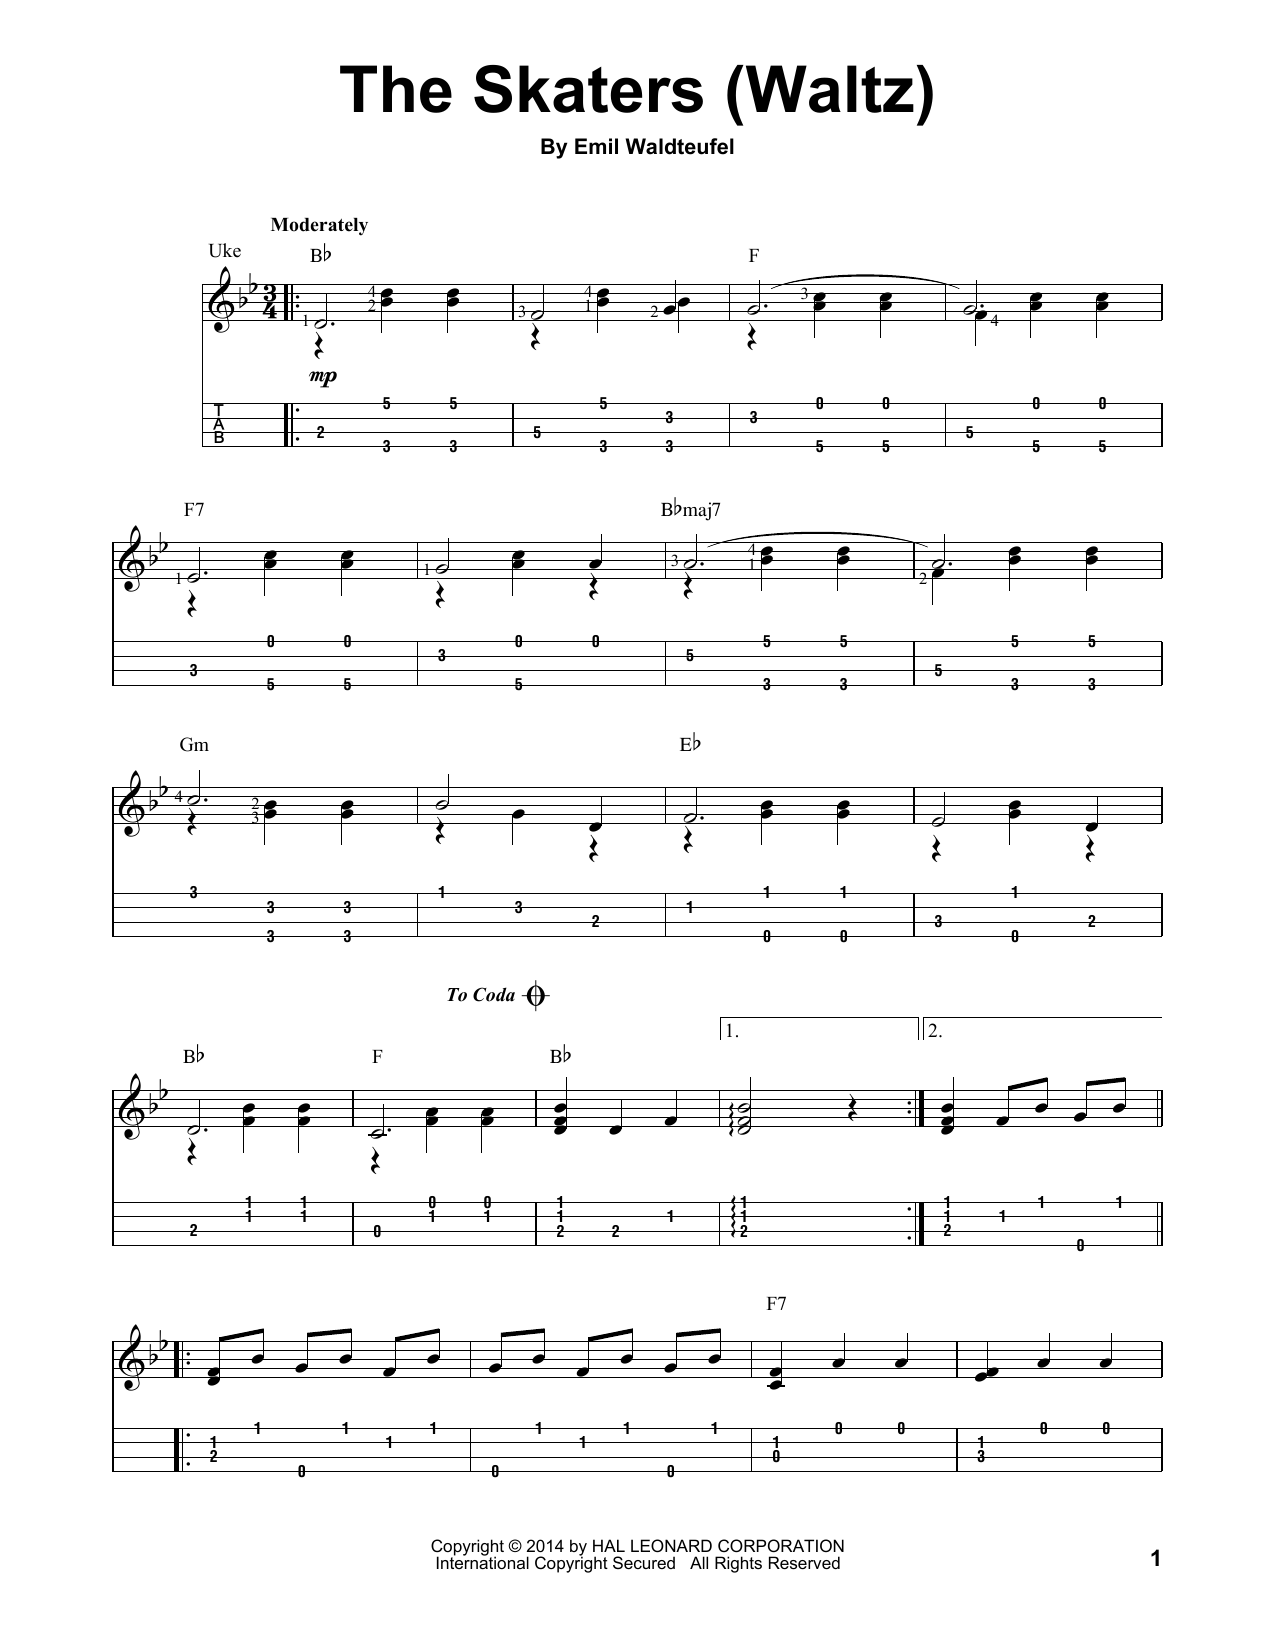 Emil Waldteufel The Skaters (Waltz) sheet music notes and chords. Download Printable PDF.